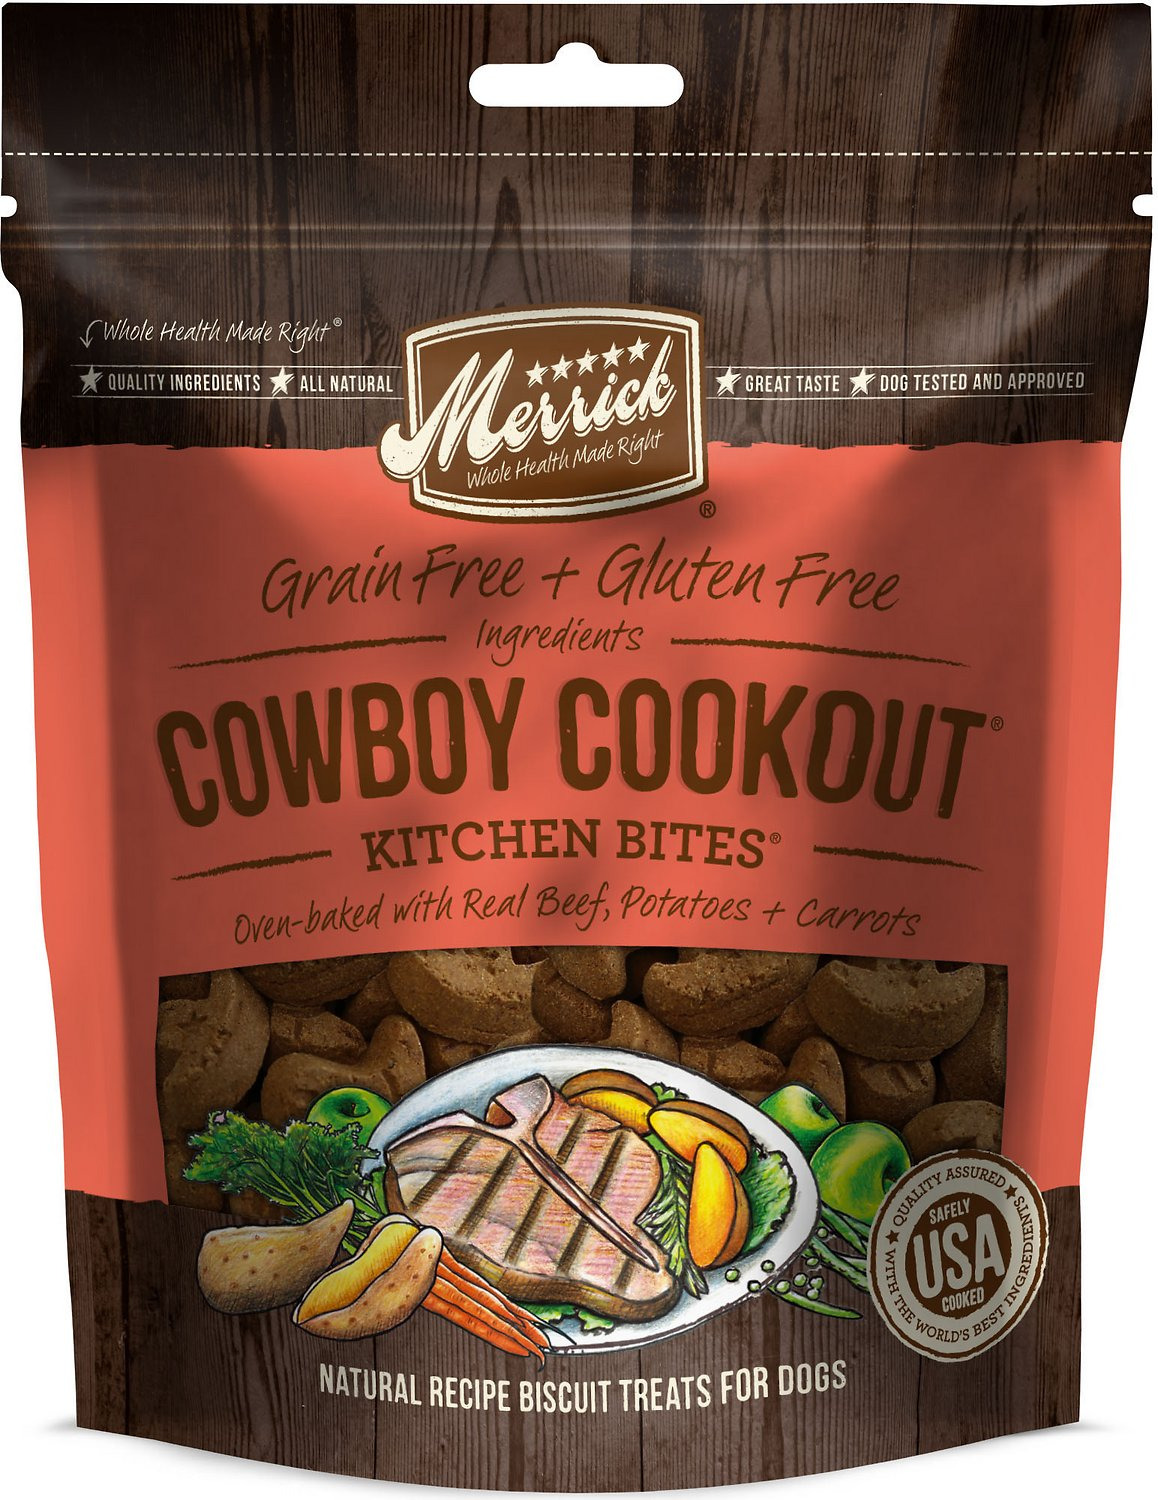 Merrick Kitchen Bites Cowboy Cookout Grain-Free Biscuits Dog Treats, 9-oz bag